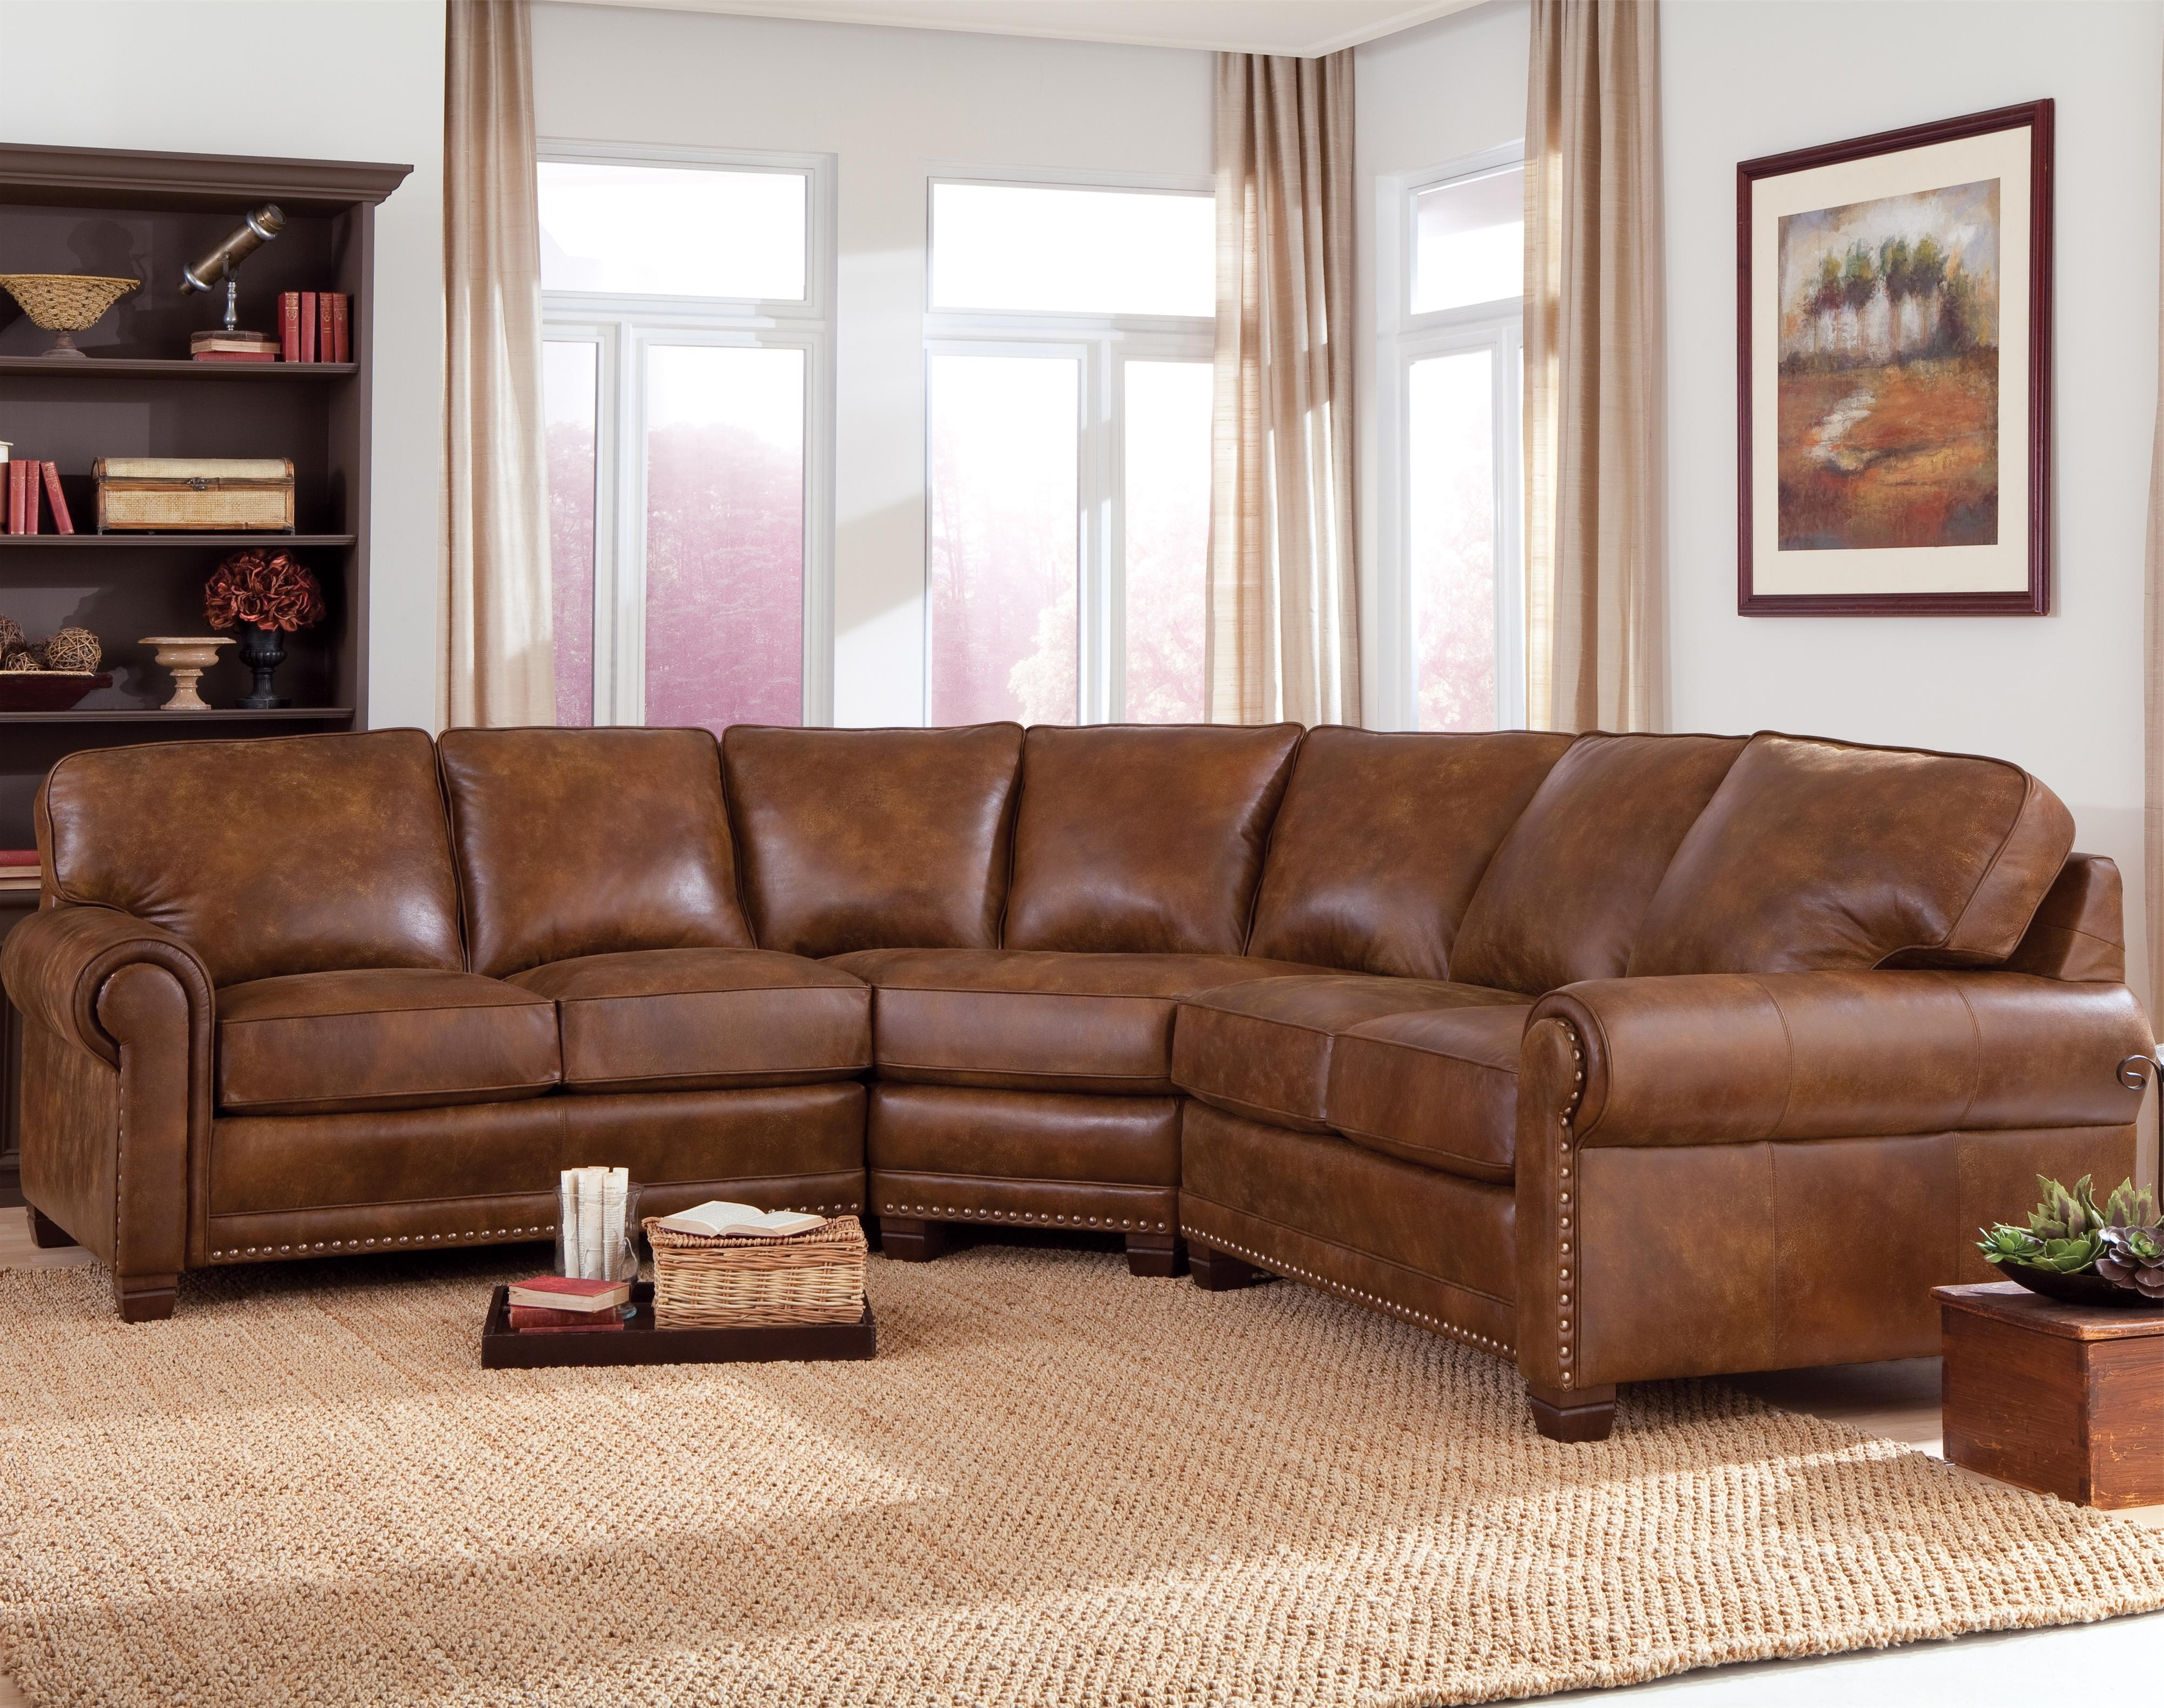 Favorite Traditional 3 Piece Sectional Sofa With Nailhead Trimsmith With Sectional Sofas With Nailheads (View 3 of 15)